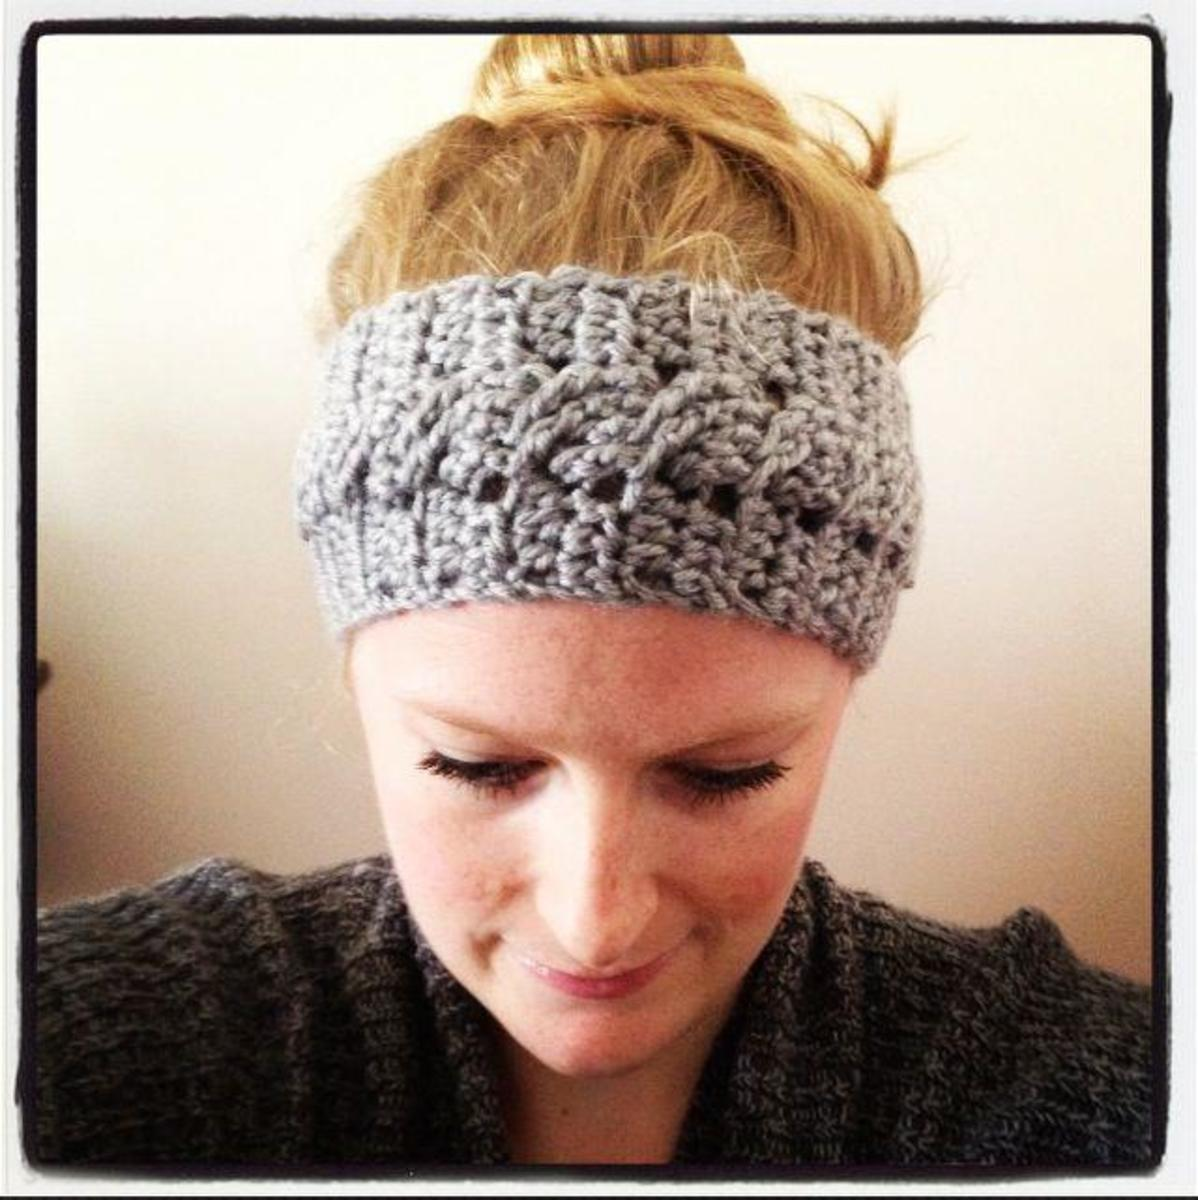 Delightful stylish headband for an advanced crocheter.